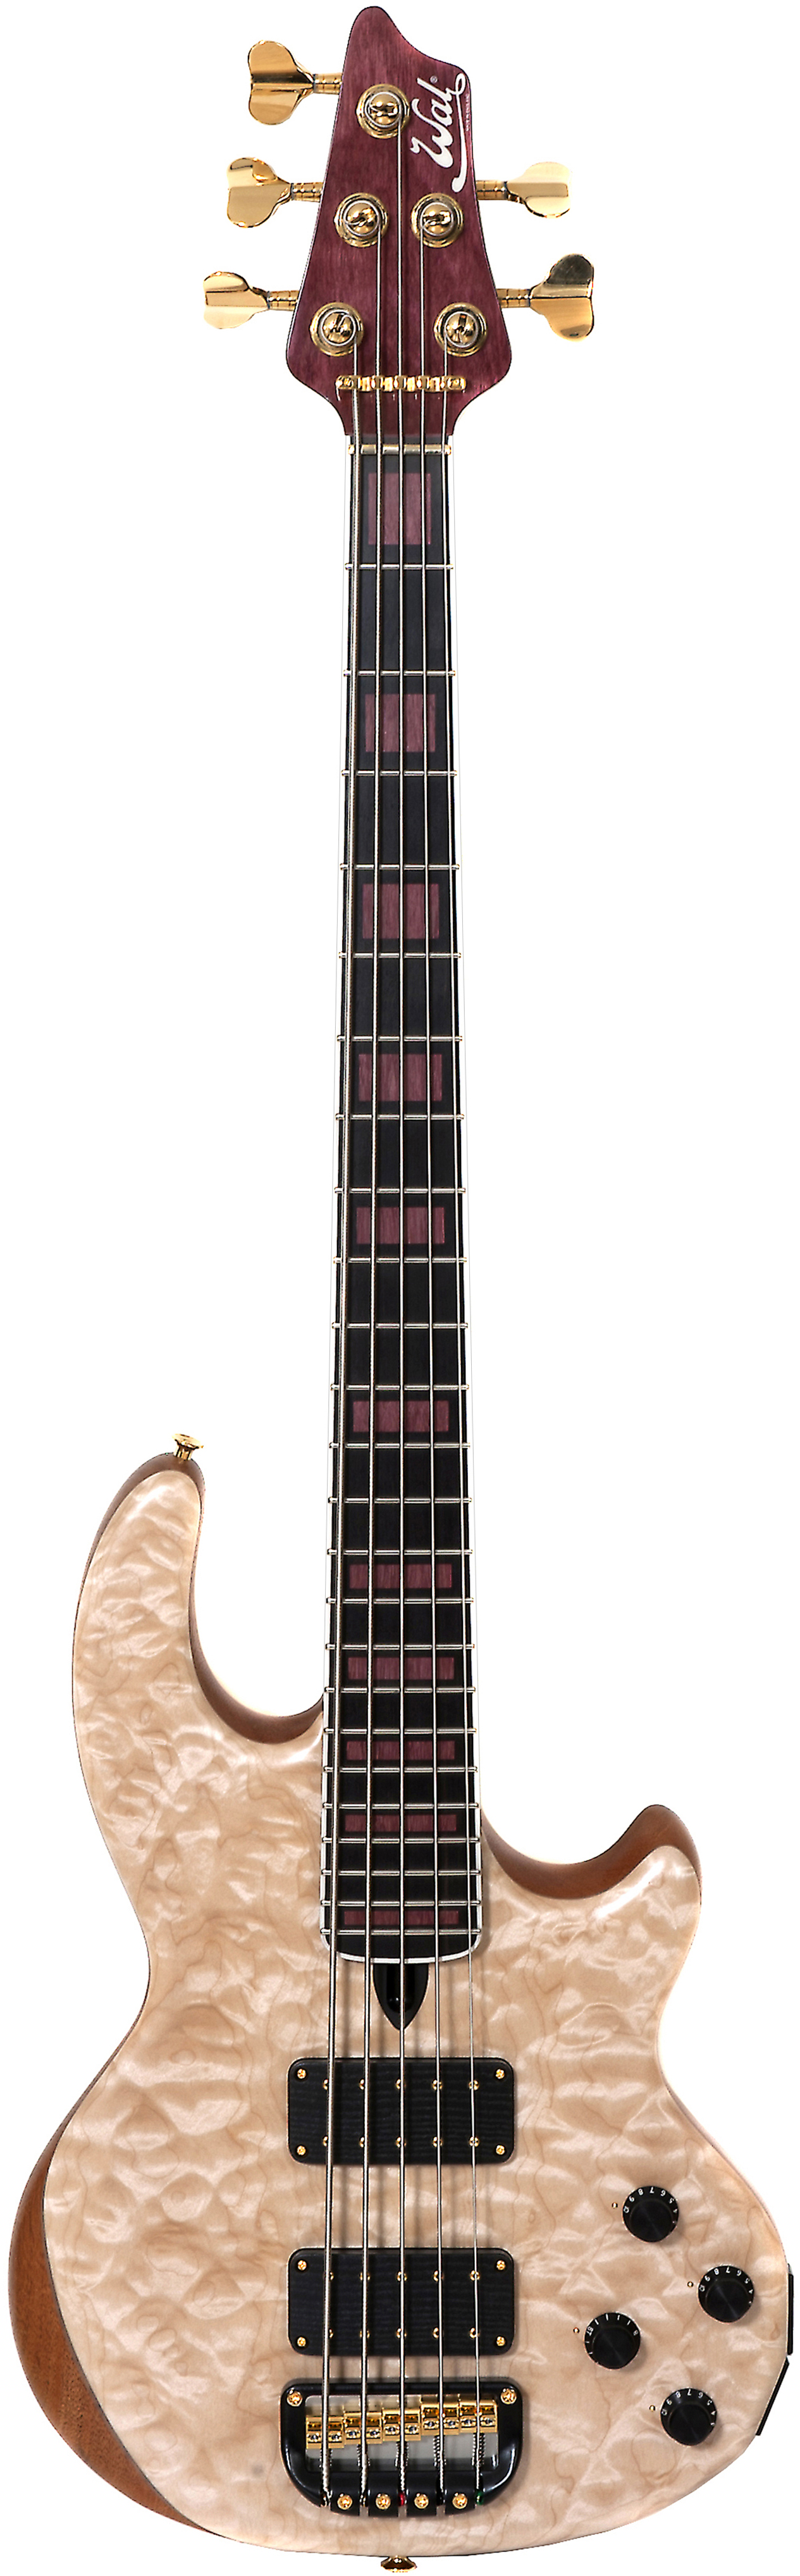 5-string Mk2 with quilted maple facings, a fretted ebony fingerboard with purpleheart block inlays, purpleheart headstock veneer and gold hardware.